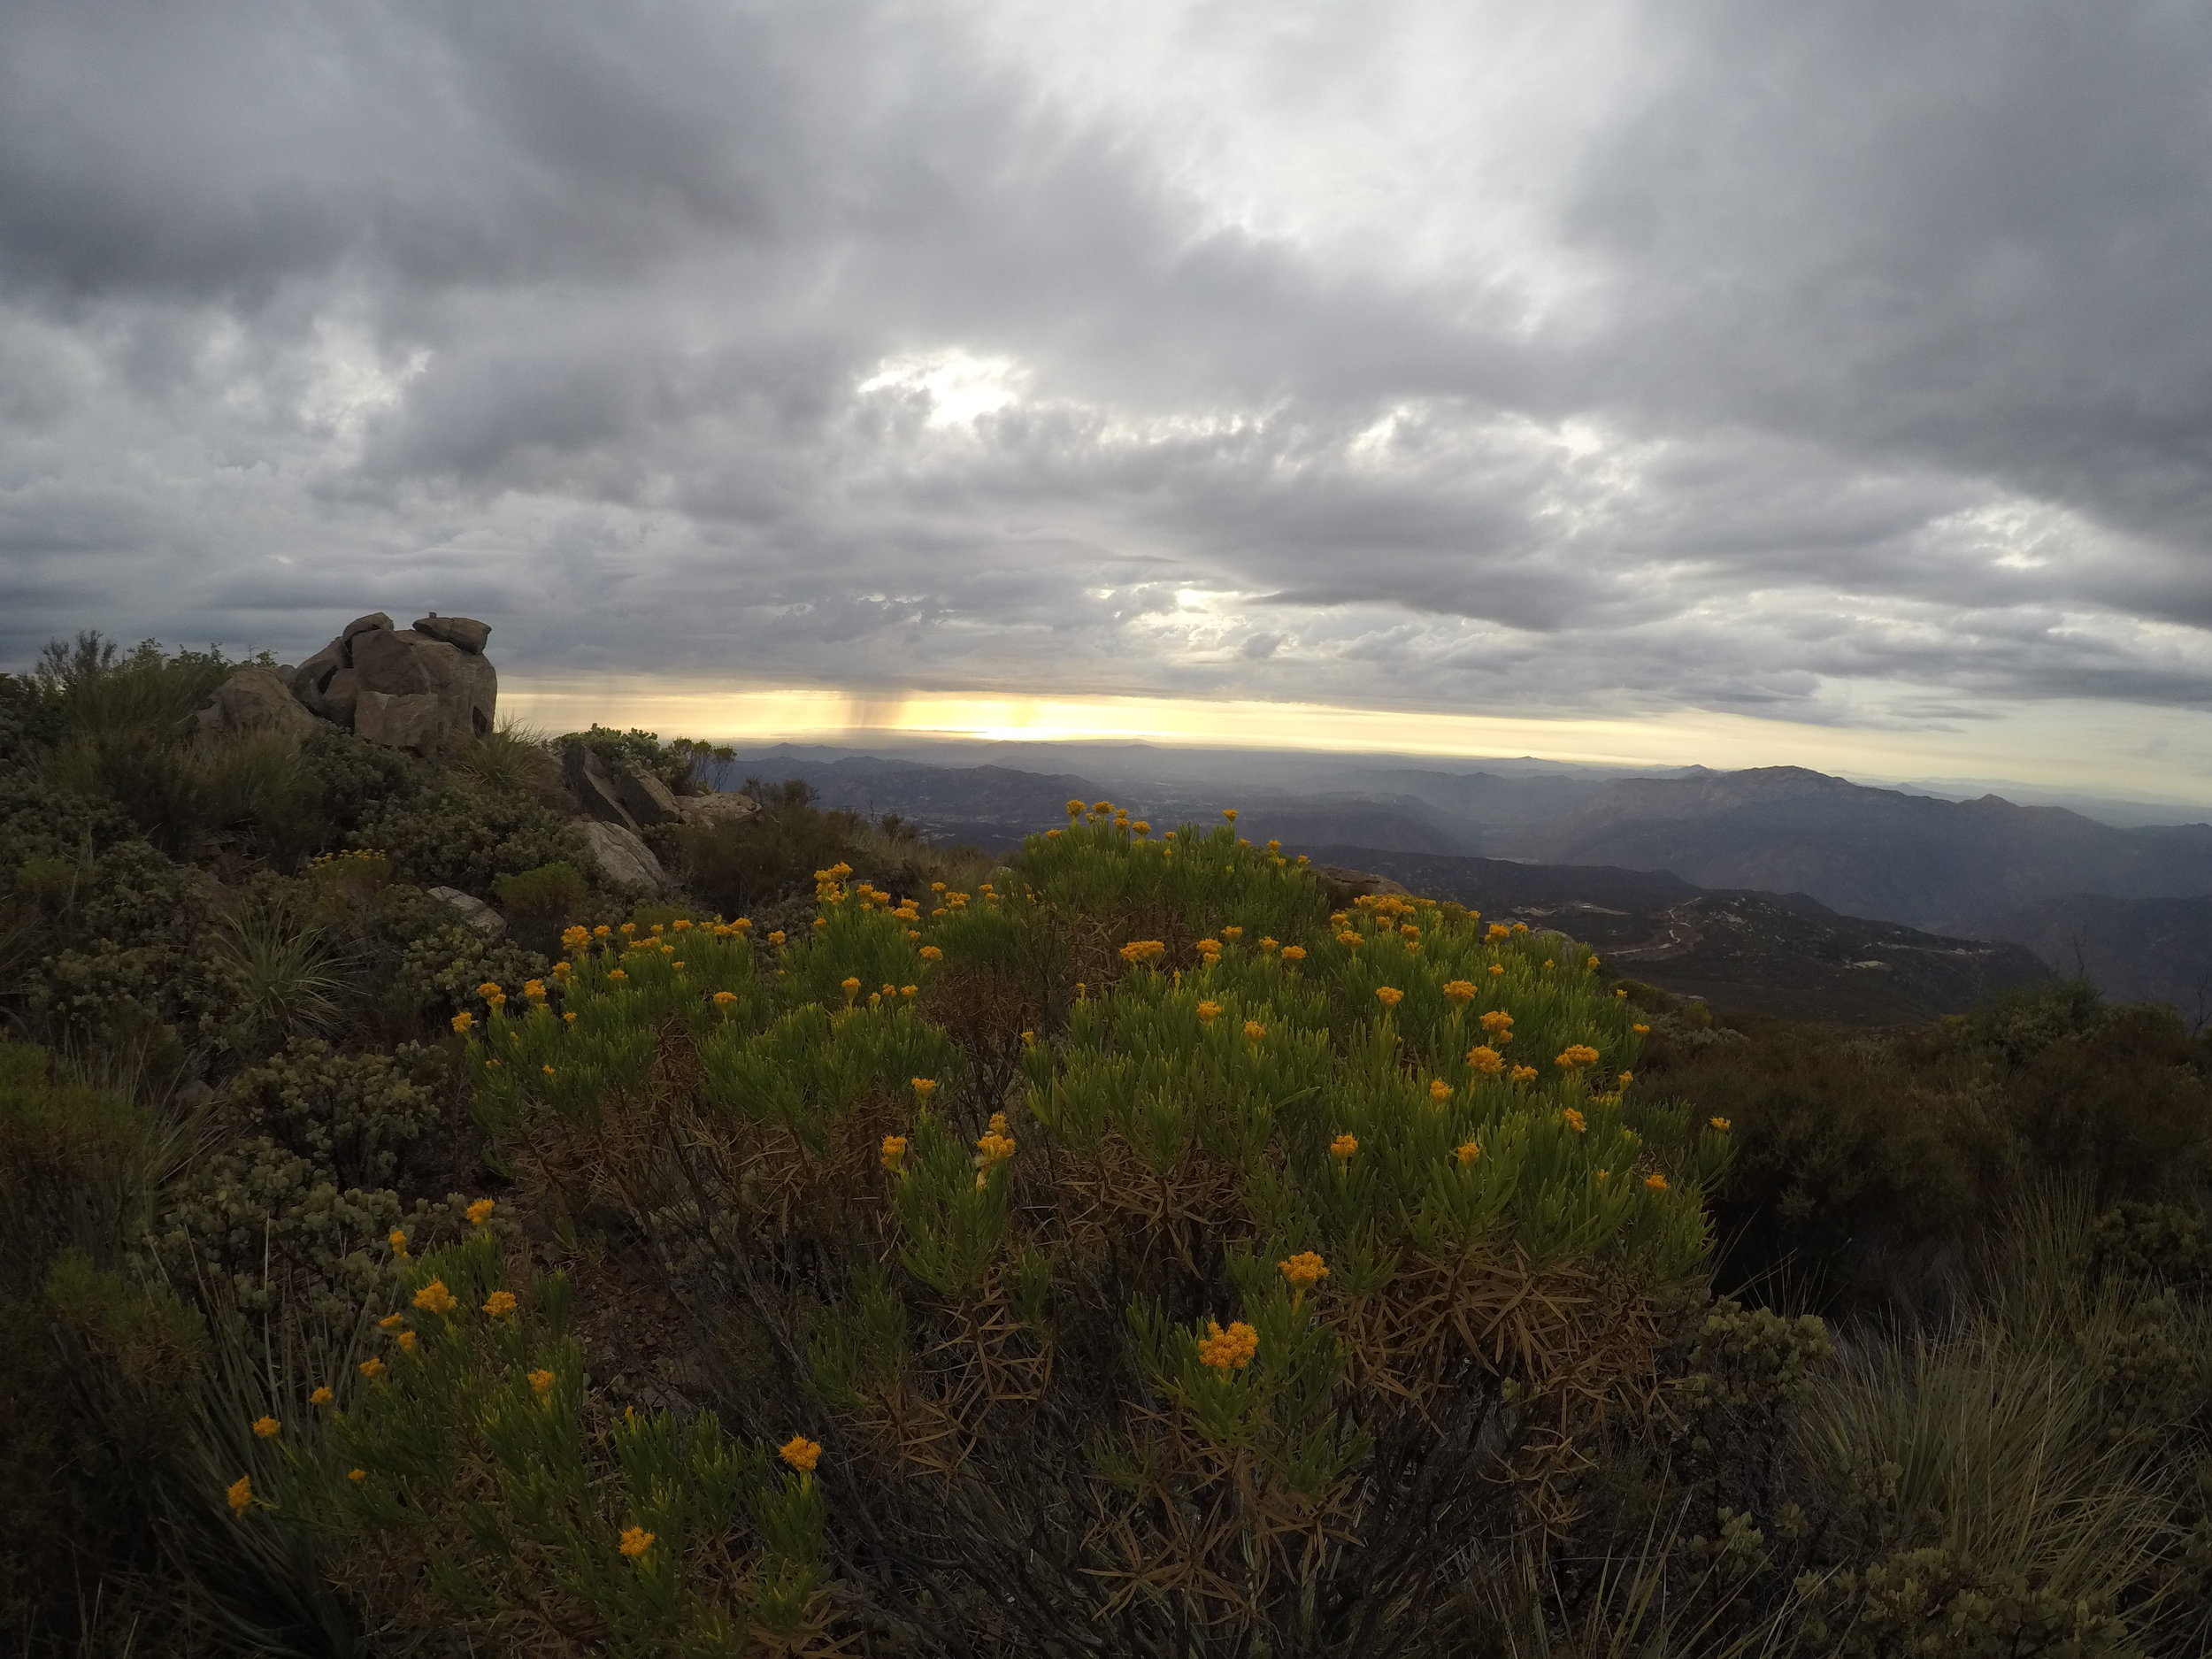 Viejas Mountain is also one of the less trafficked peaks in the Cleveland National Forest, which provides a great deal of solitude for a hiker.